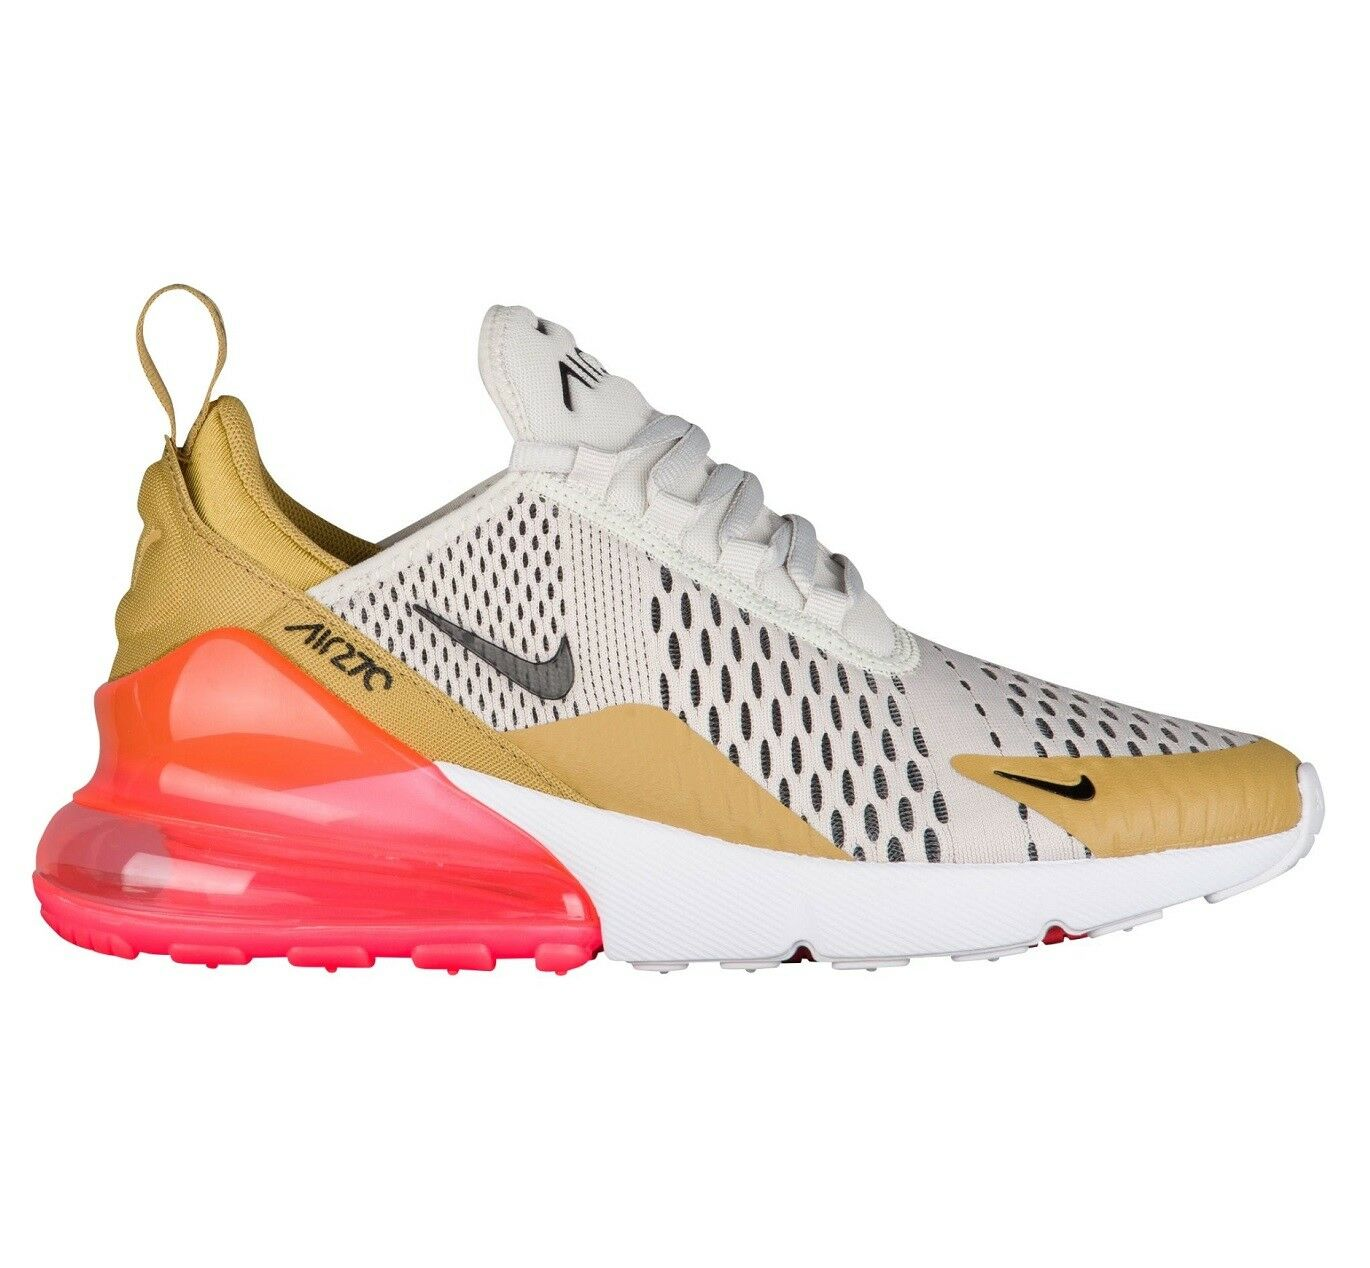 Nike Air Max 270 Flight Gold Womens Bone Punch Running Shoes Comfortable